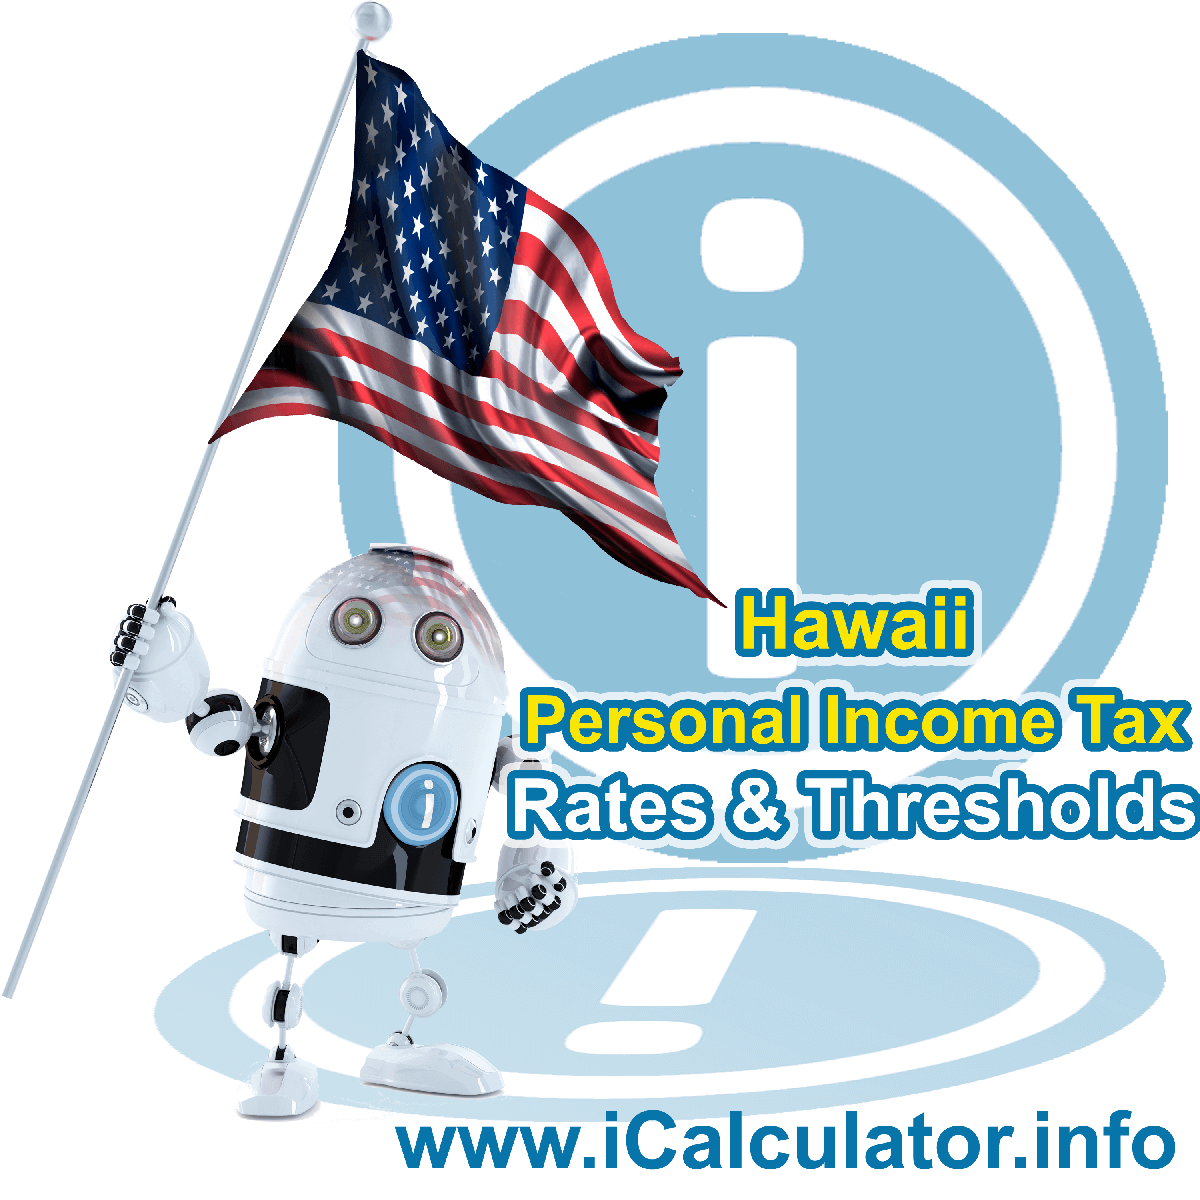 Hawaii State Tax Tables 2018. This image displays details of the Hawaii State Tax Tables for the 2018 tax return year which is provided in support of the 2018 US Tax Calculator